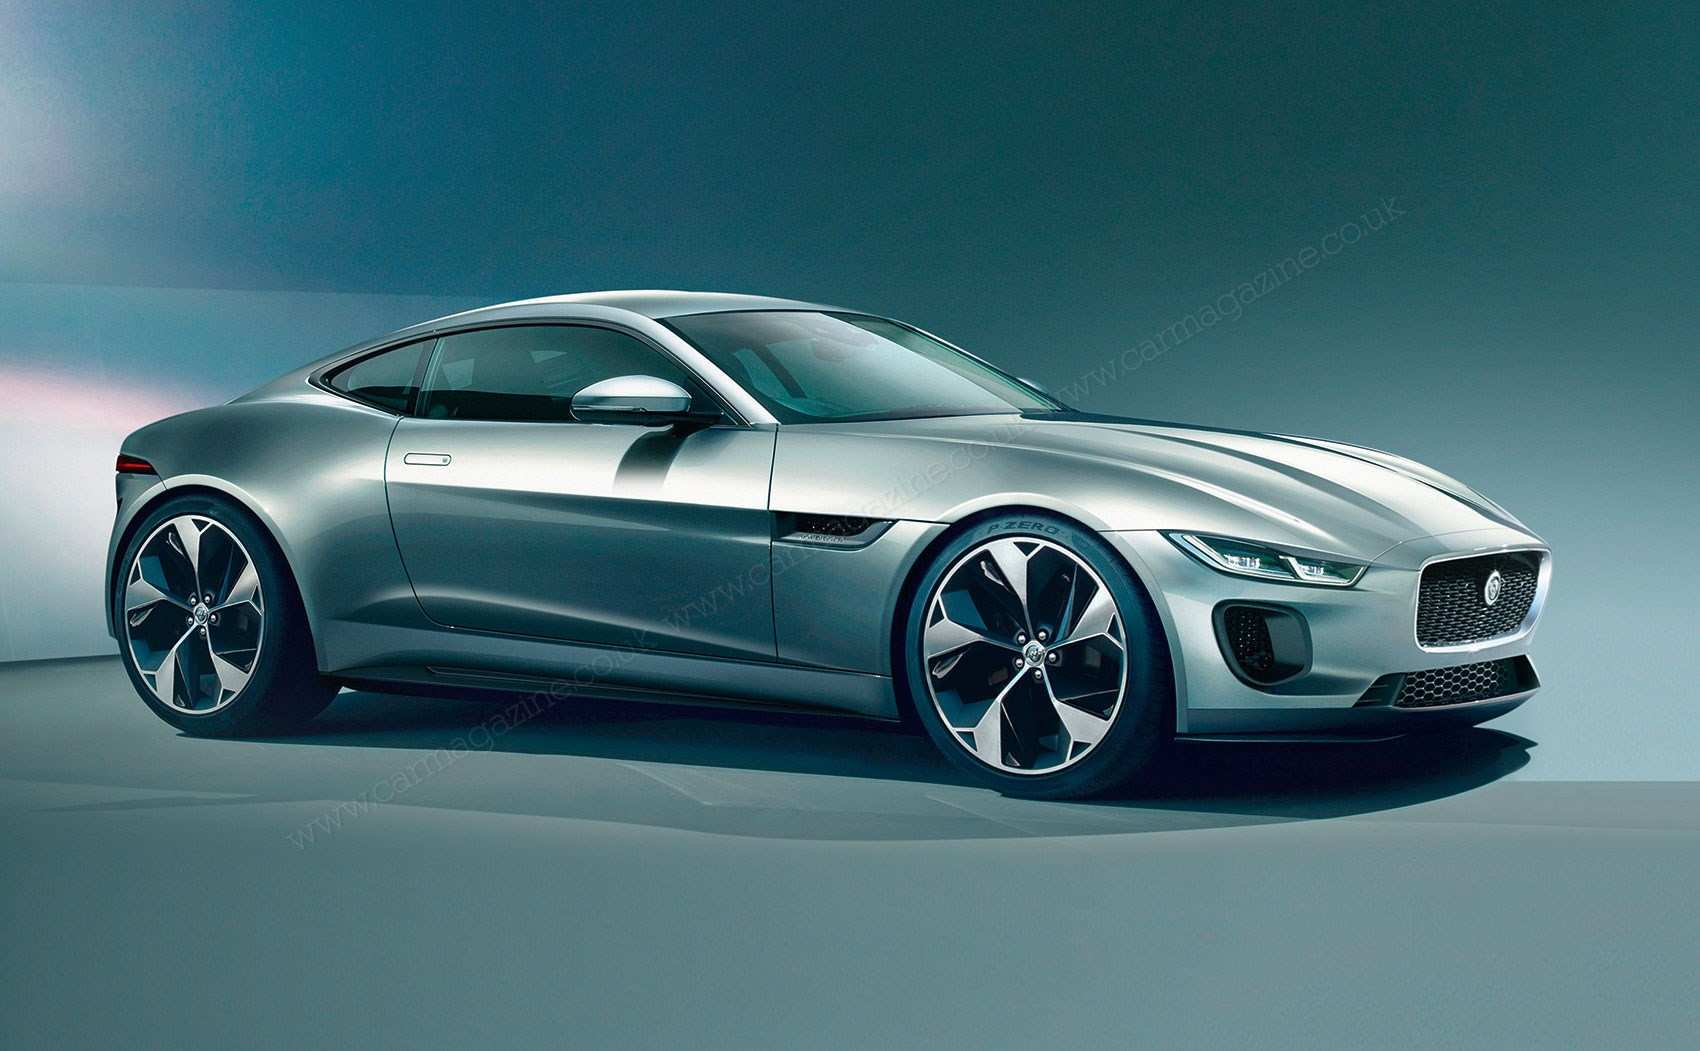 89 Concept of Jaguar F Type 2020 Exterior Style by Jaguar F Type 2020 Exterior